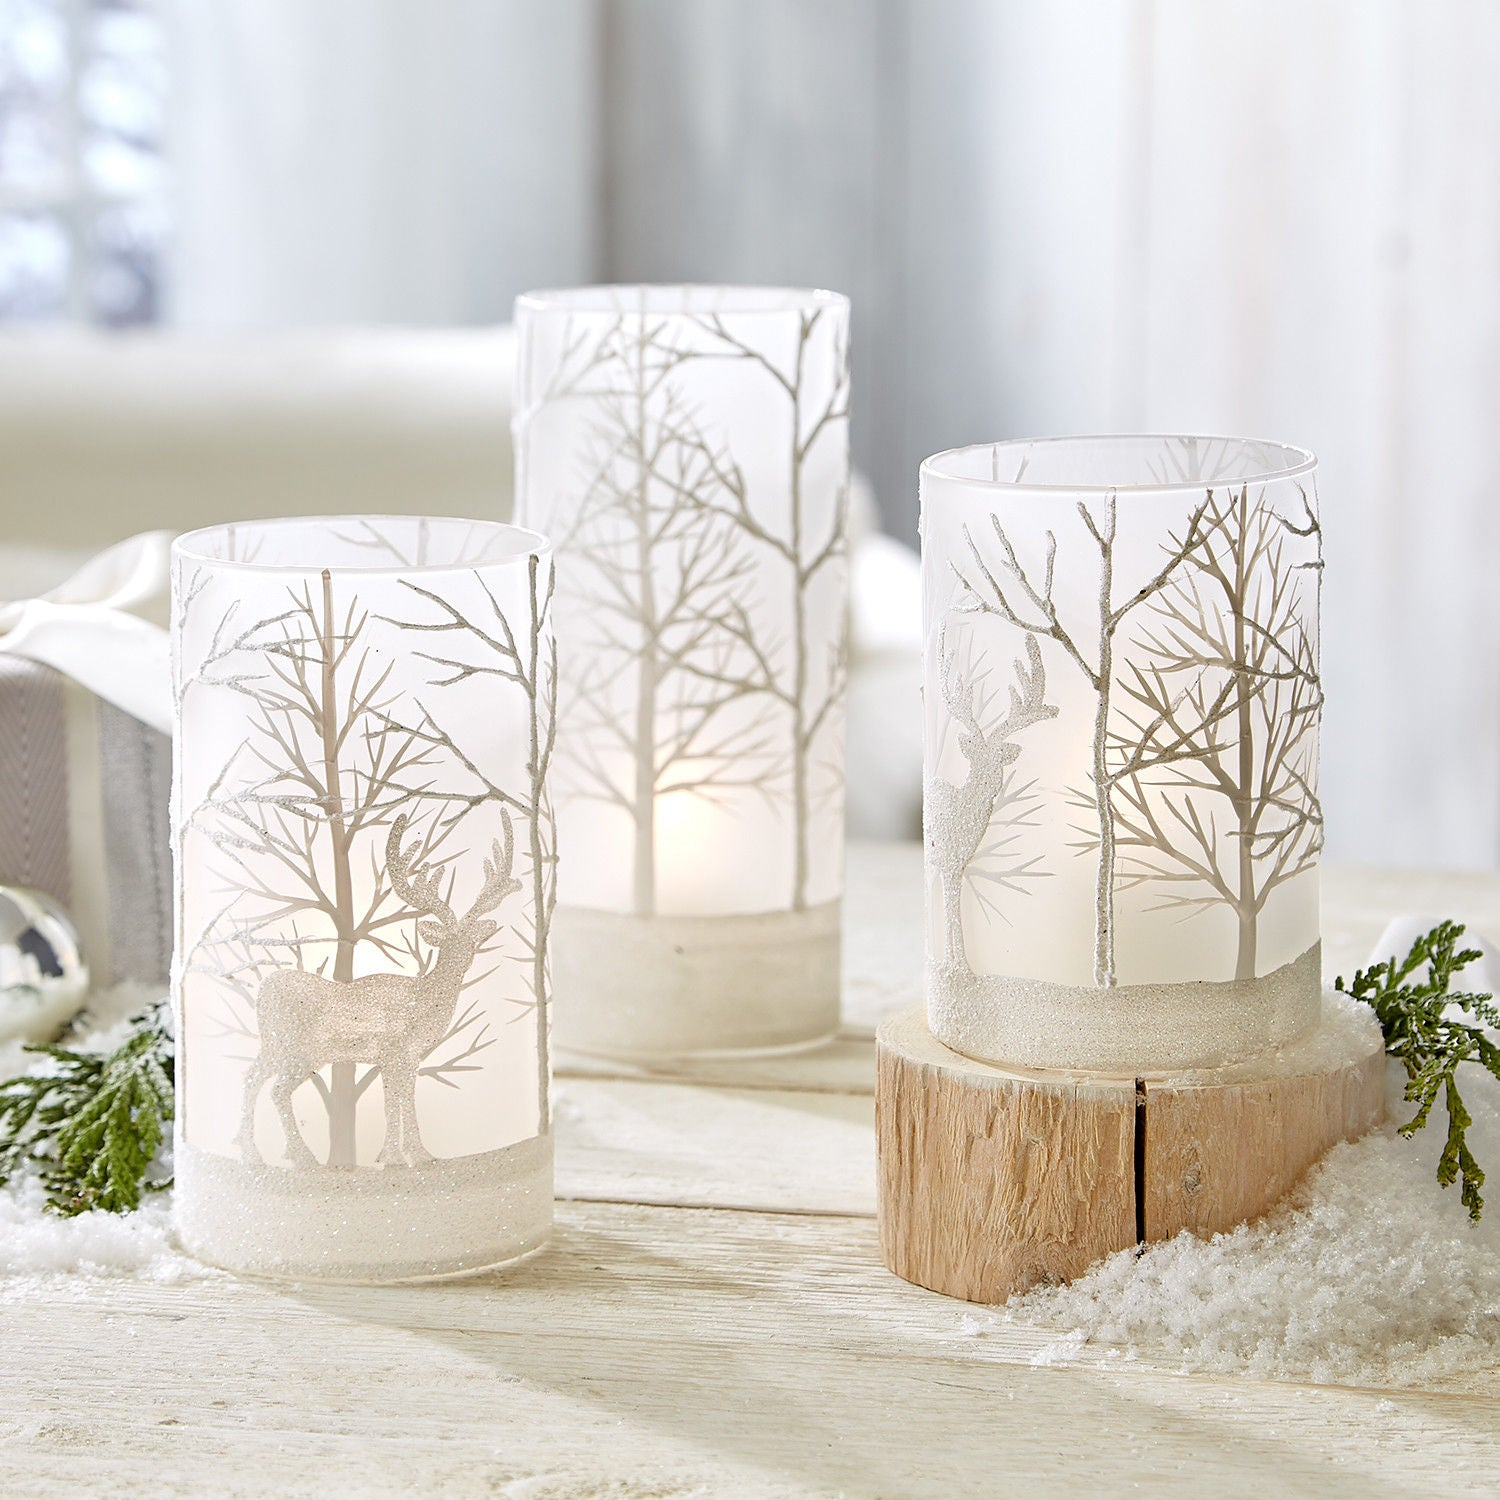 Frosted Votive Holders with Deer